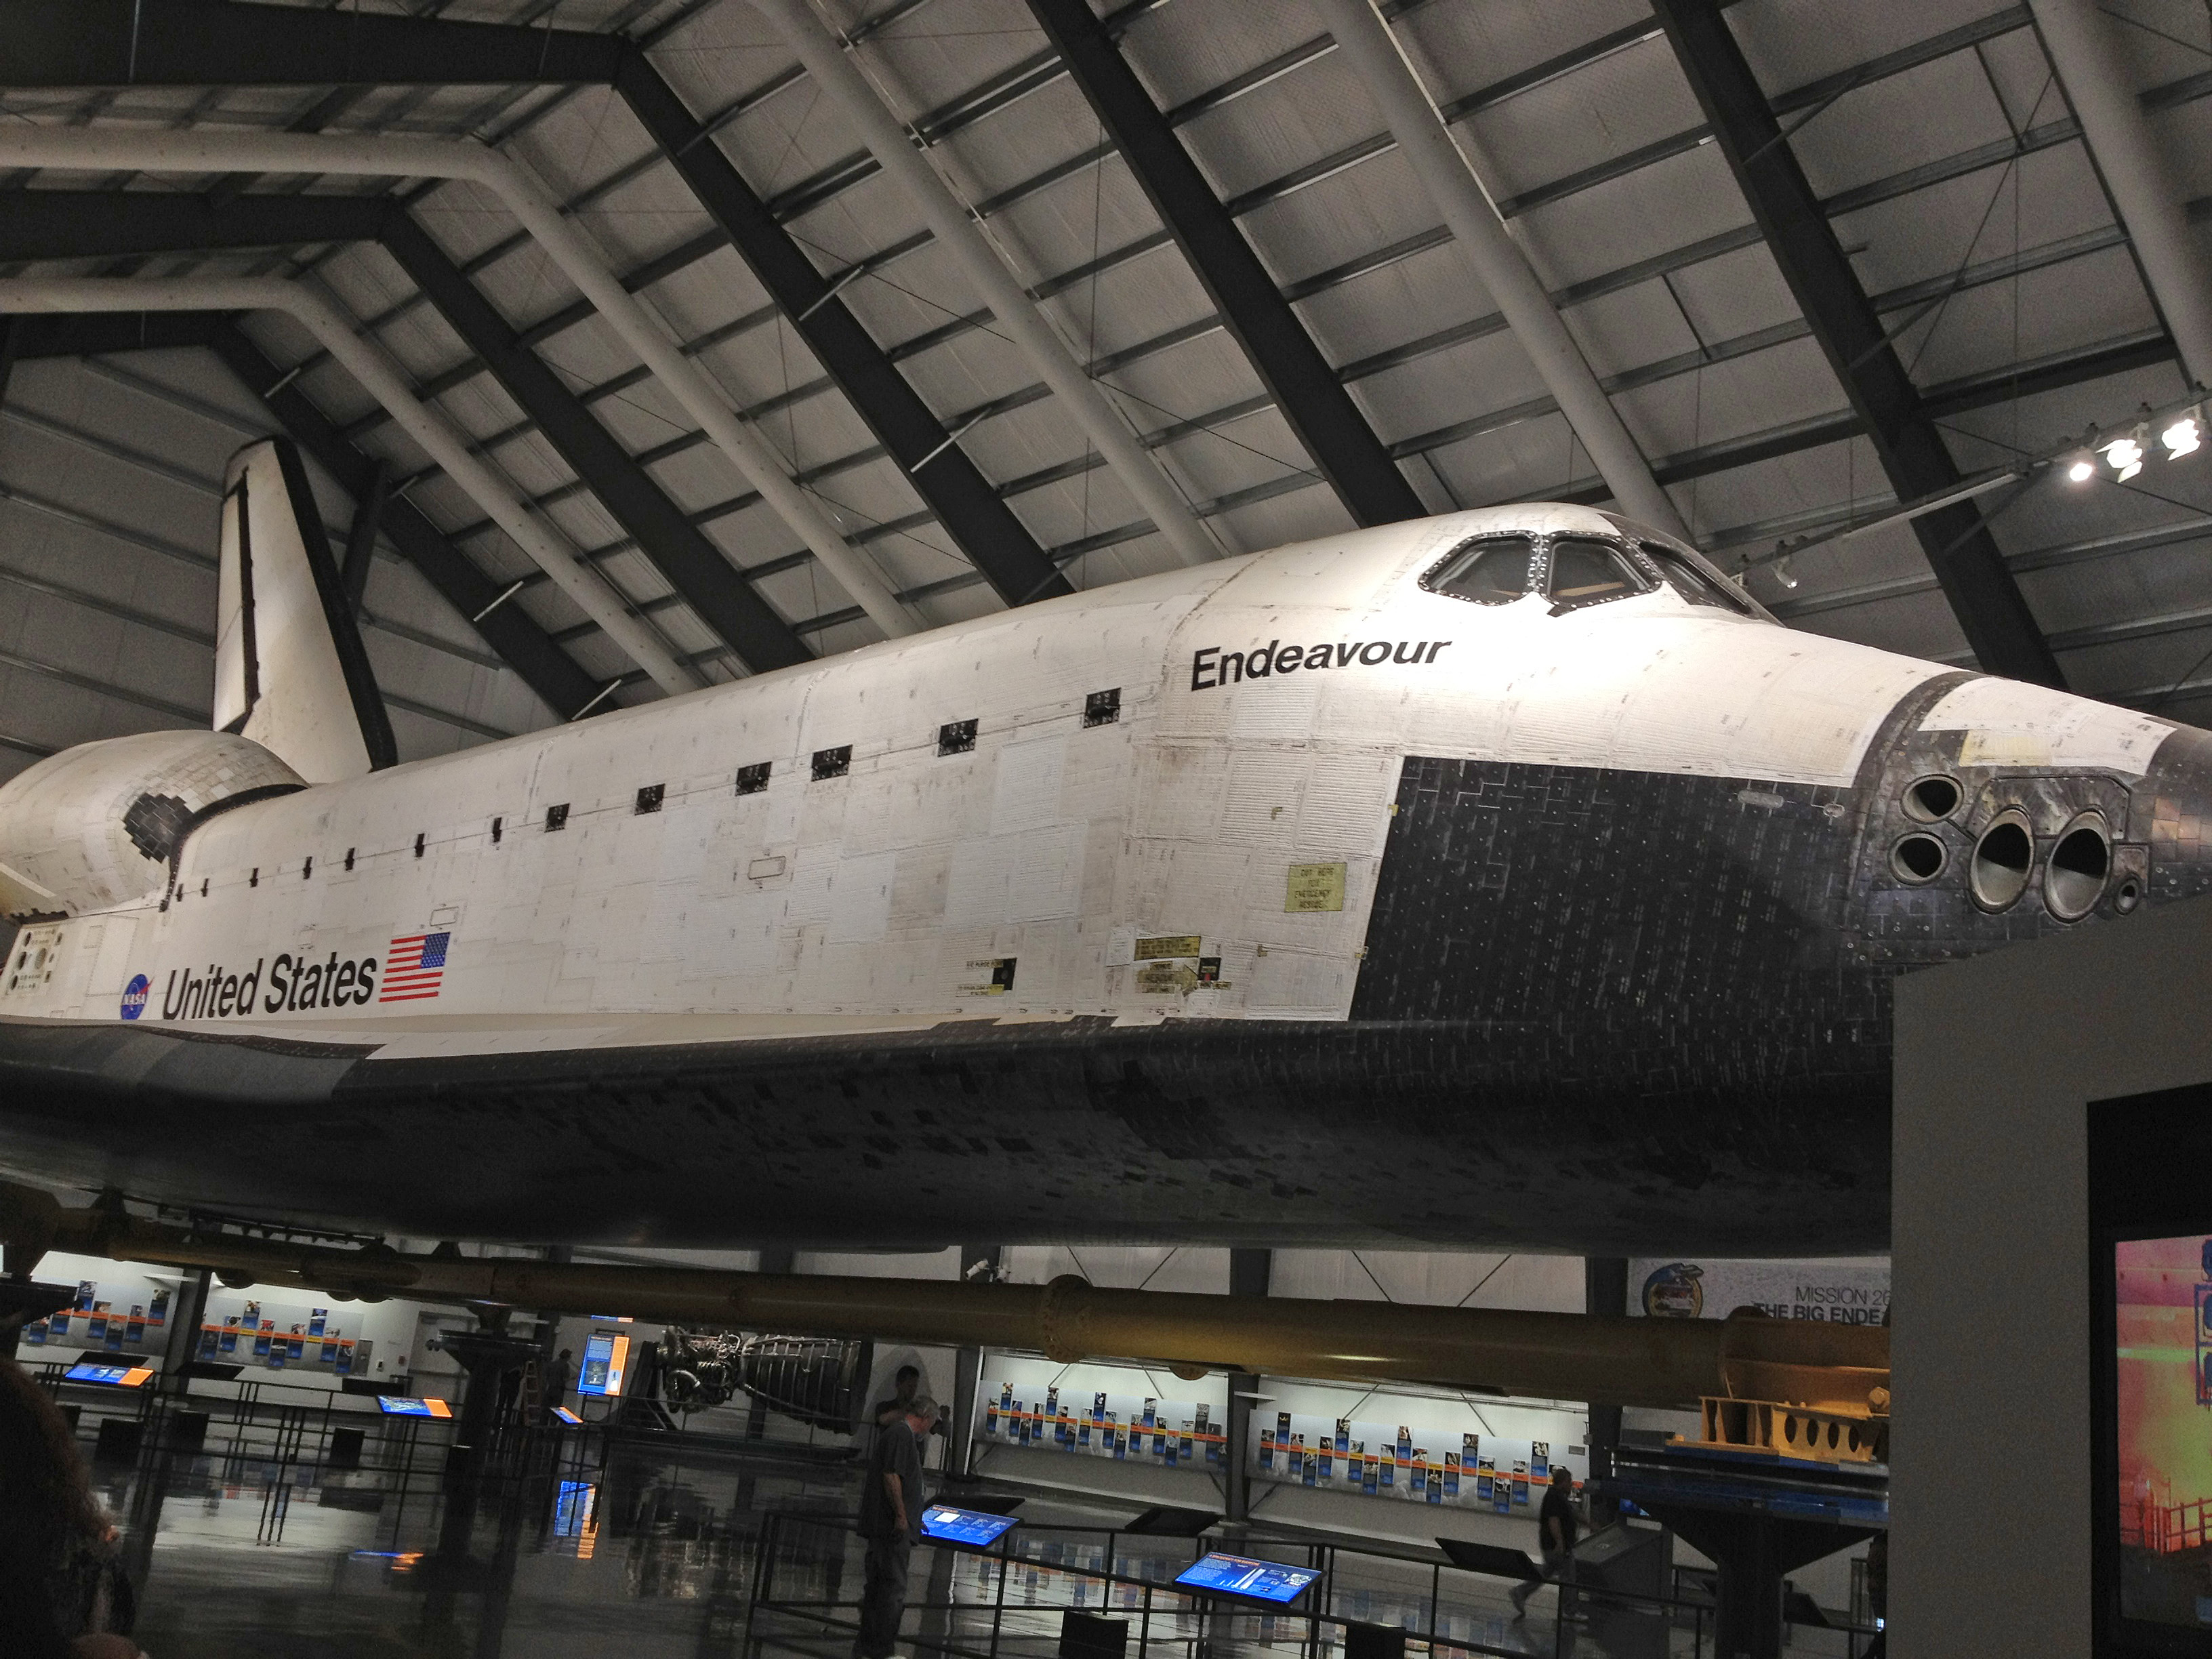 space shuttle endeavour california - photo #5